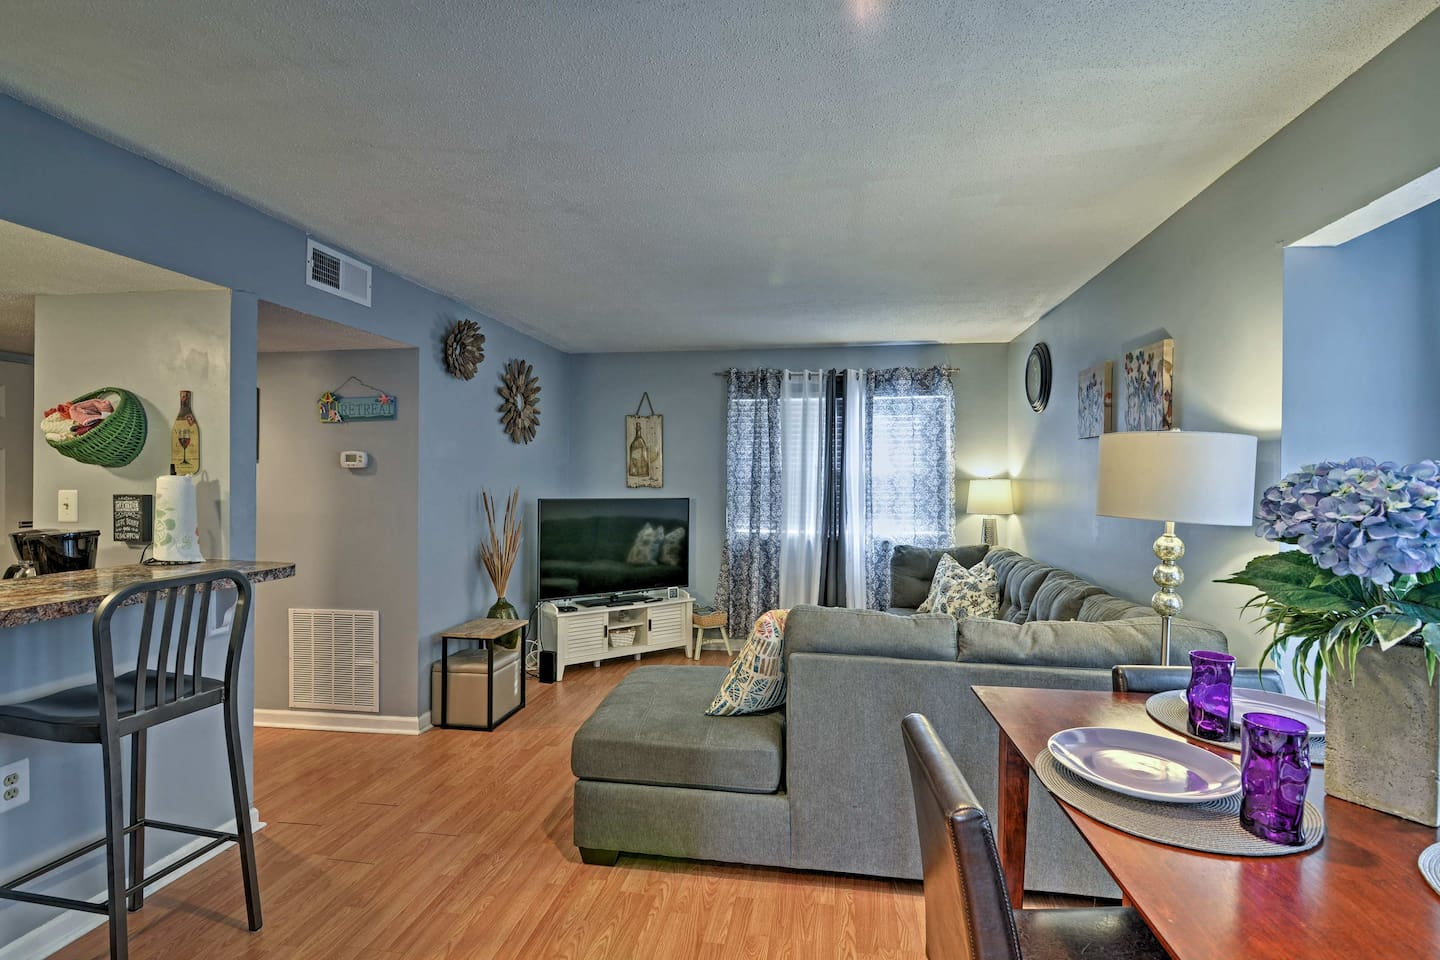 This 2-bed, 2-bath vacation rental condo has all the comforts of home!